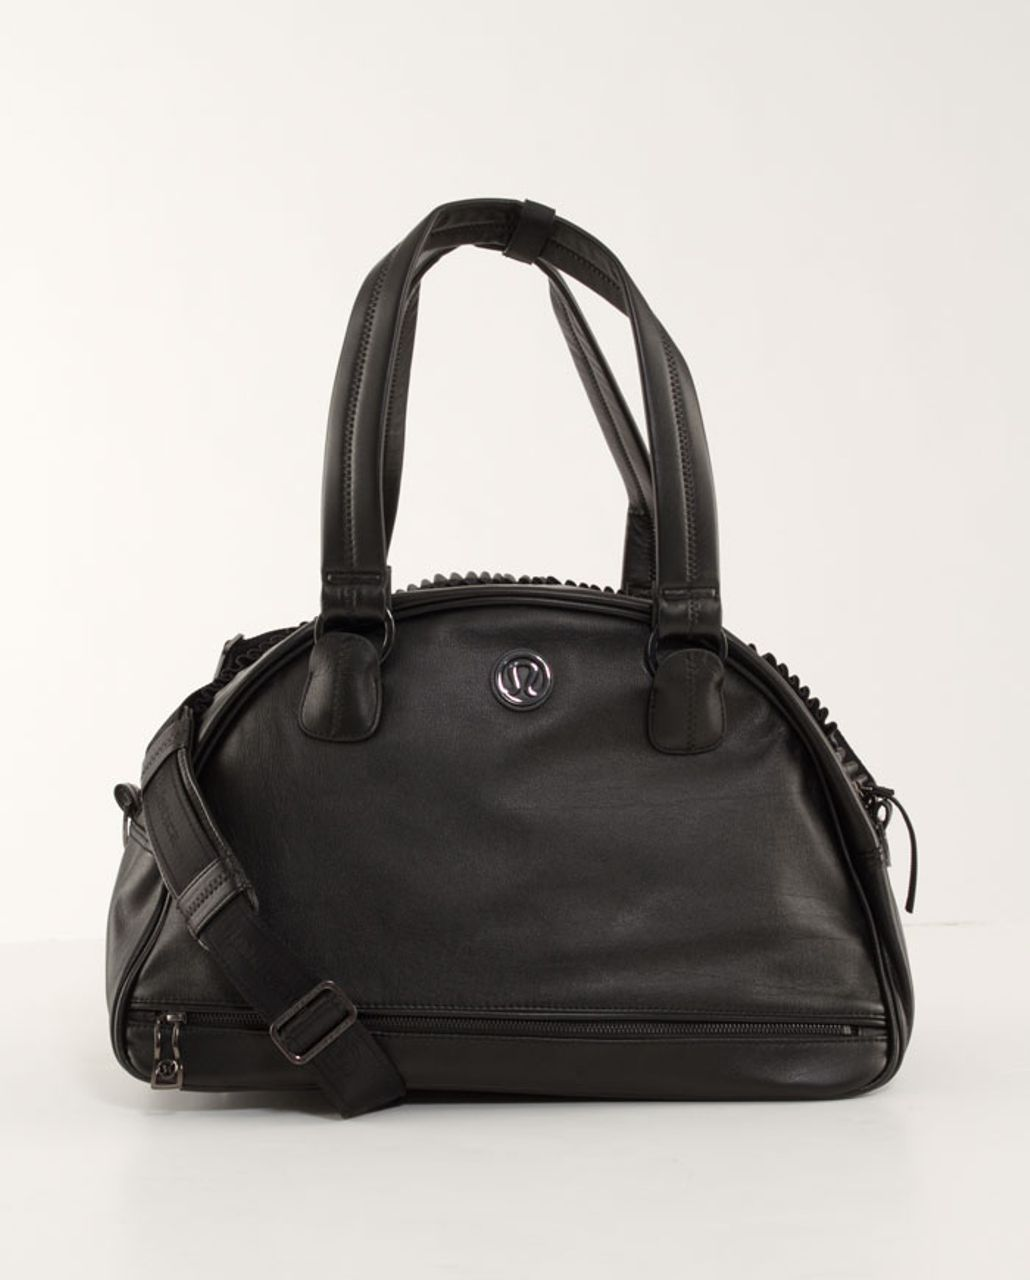 Lululemon Still Groovy Bag - Black